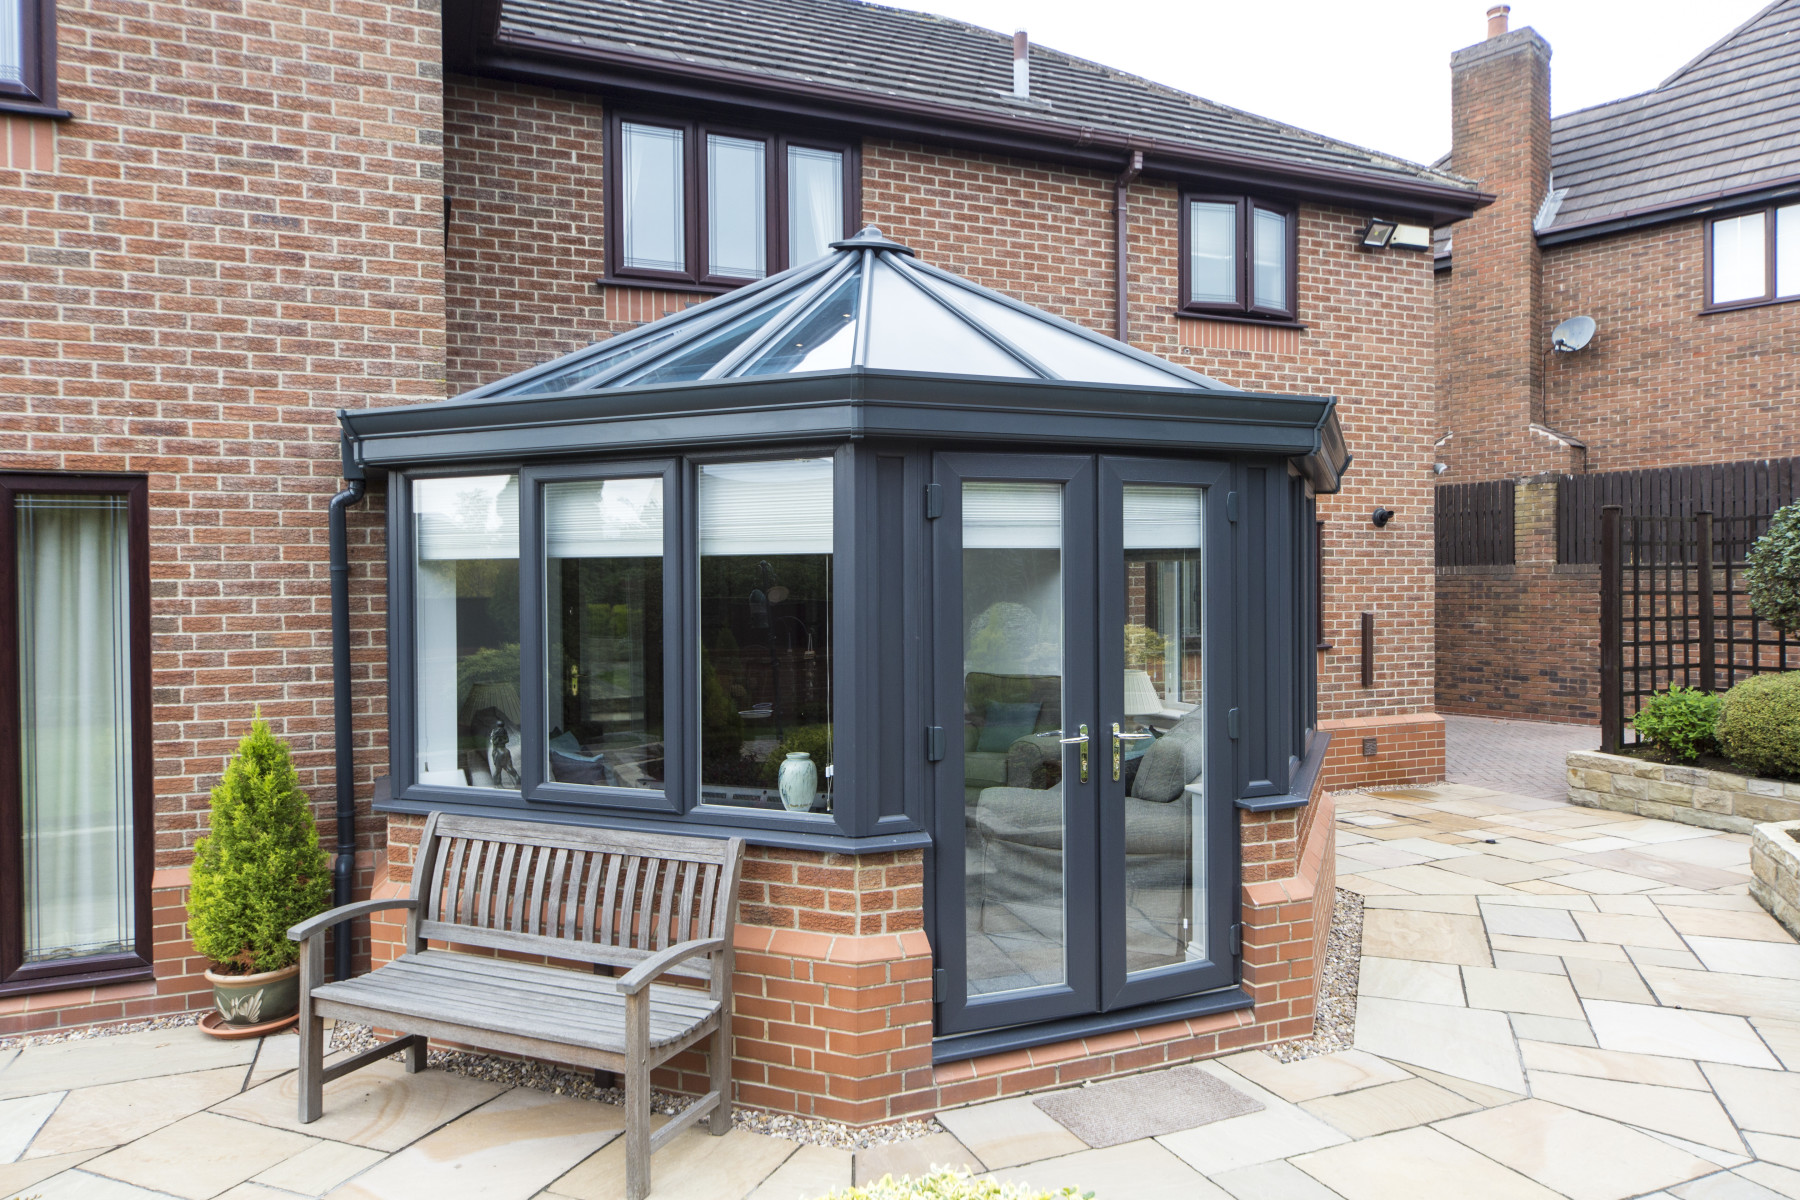 Insulated conservatory roof Dorset